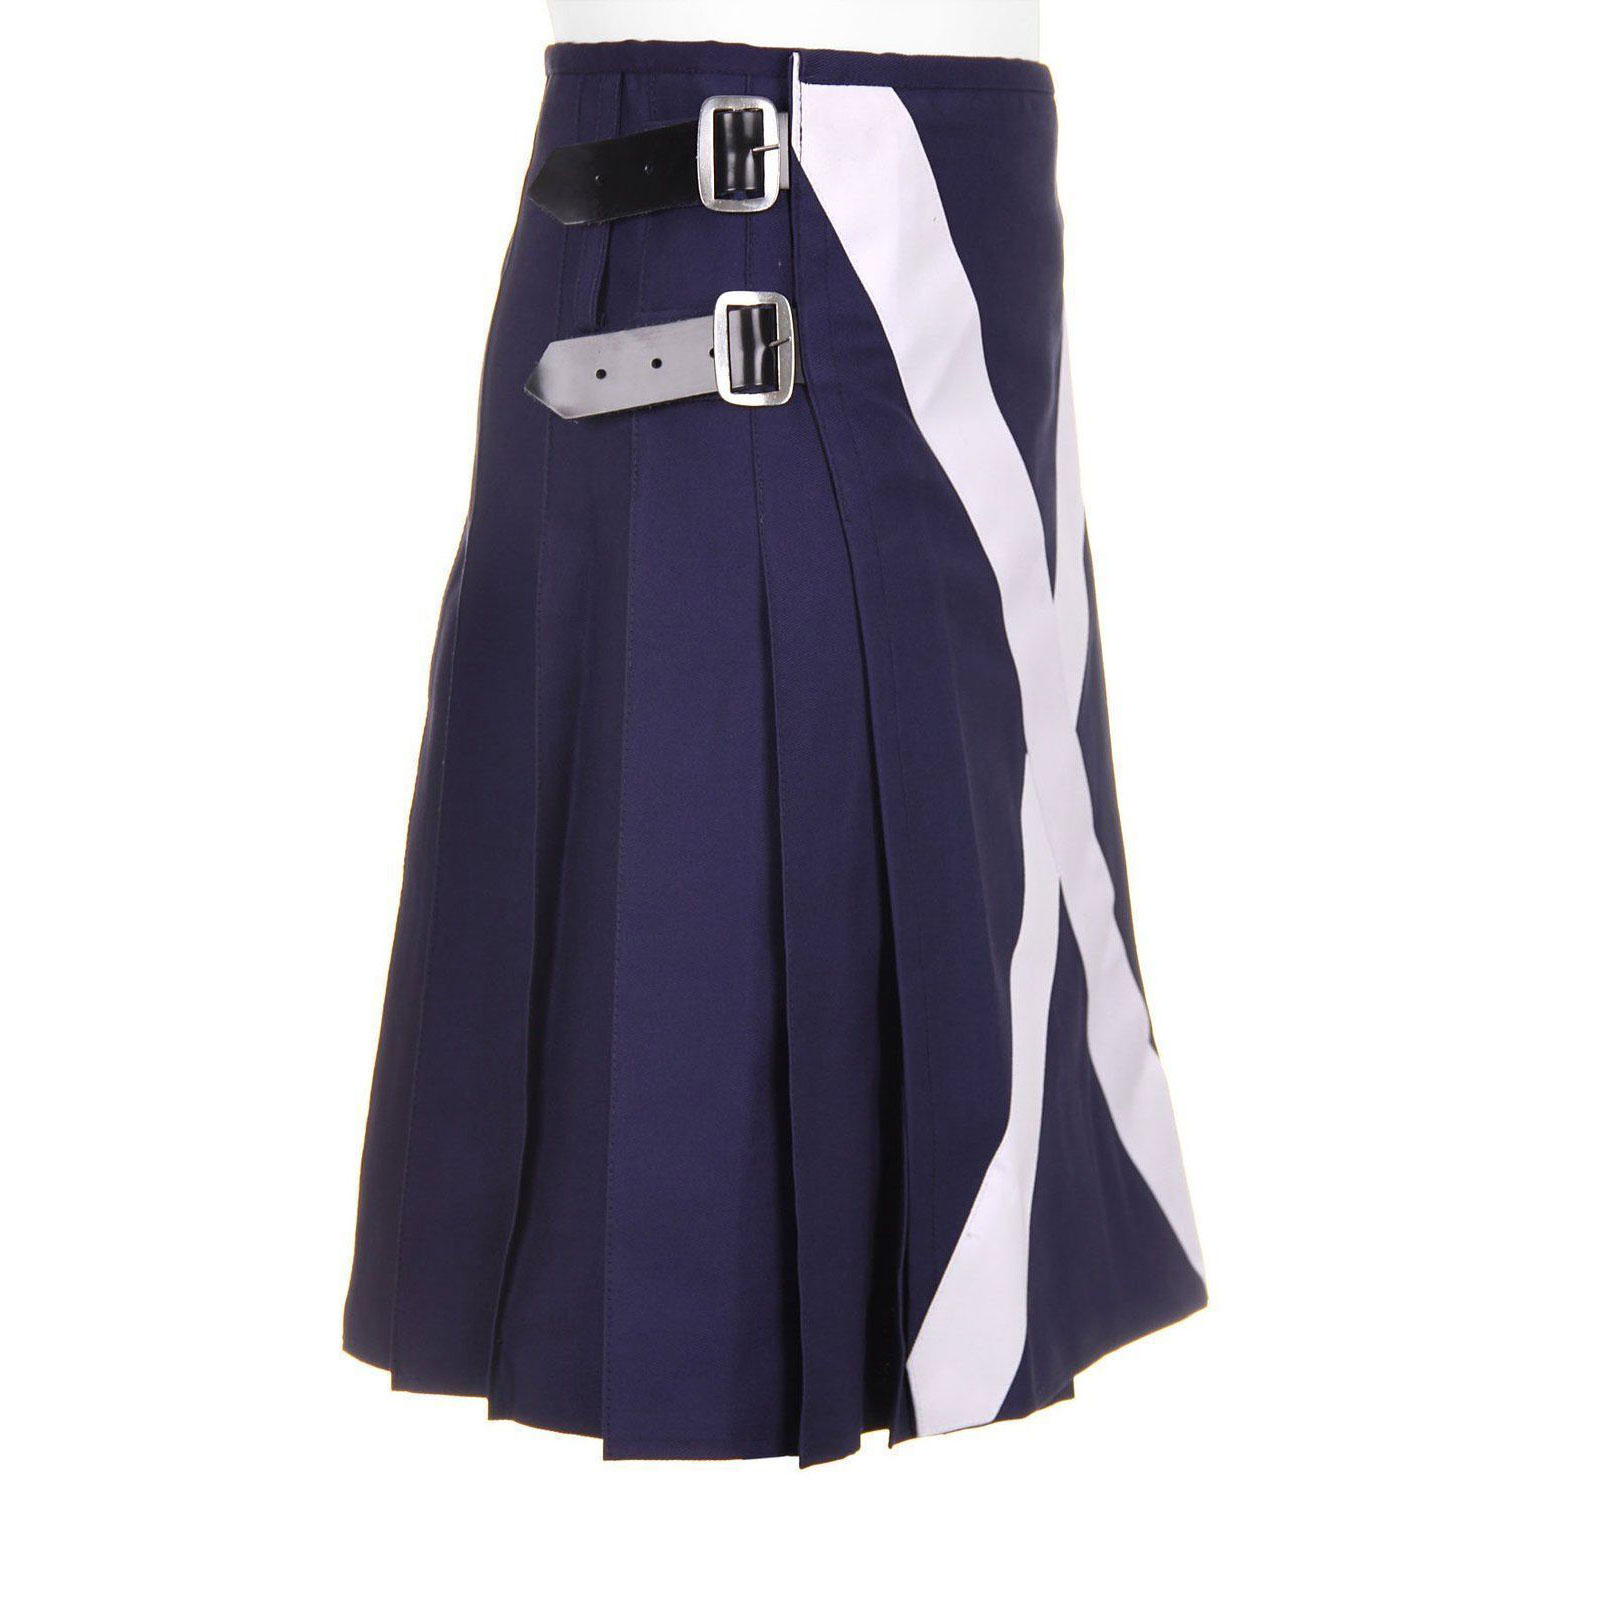 Scottish-Flag-Utility-Kilt-Buckles